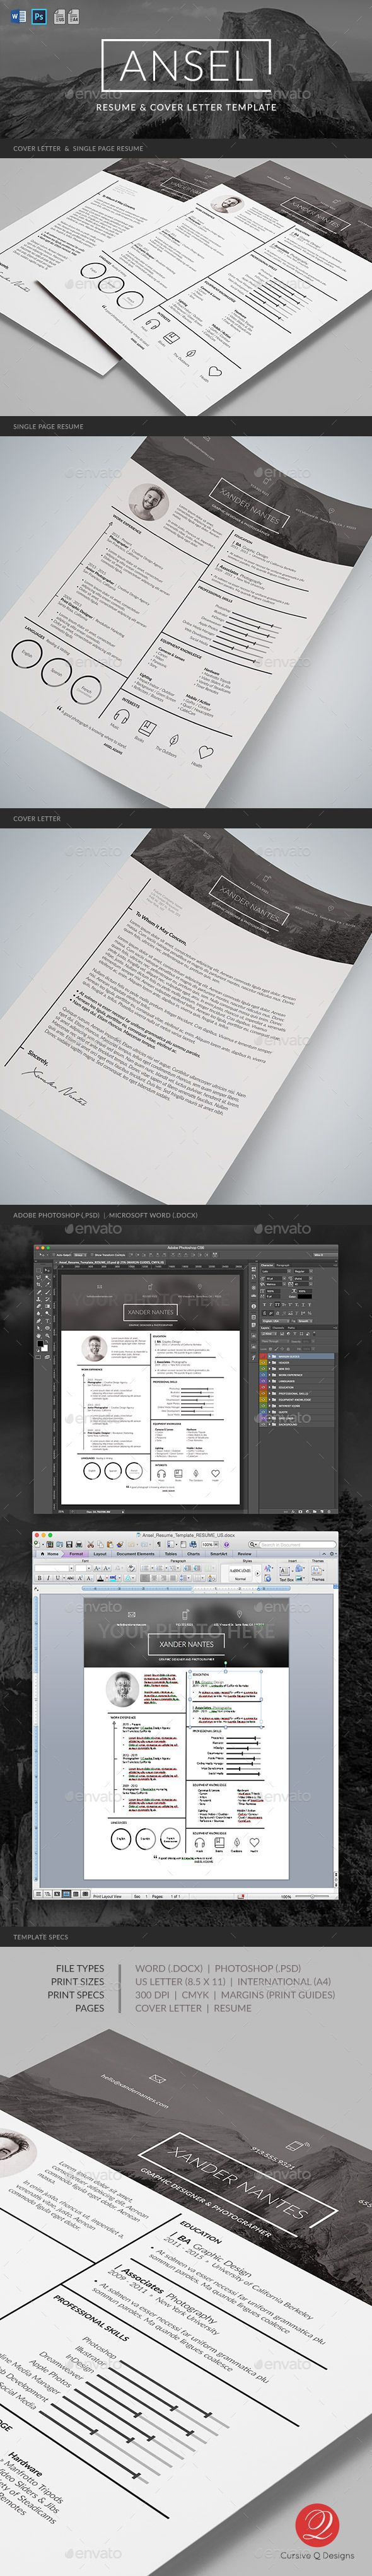 Cv Templates Design%0A Ansel  Resume and Cover Letter Template